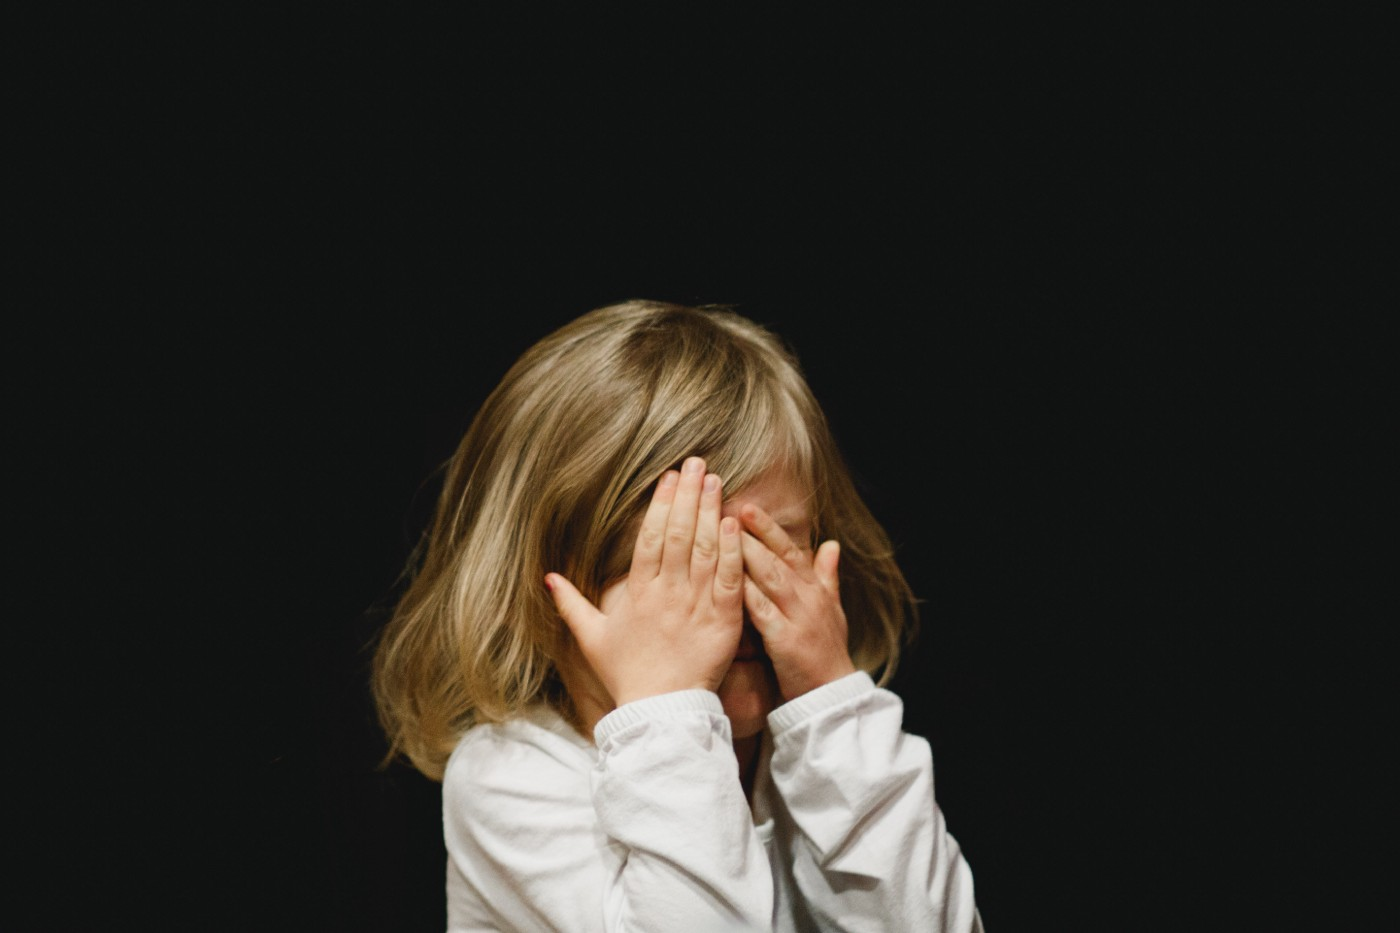 Young girl covers her eyes.